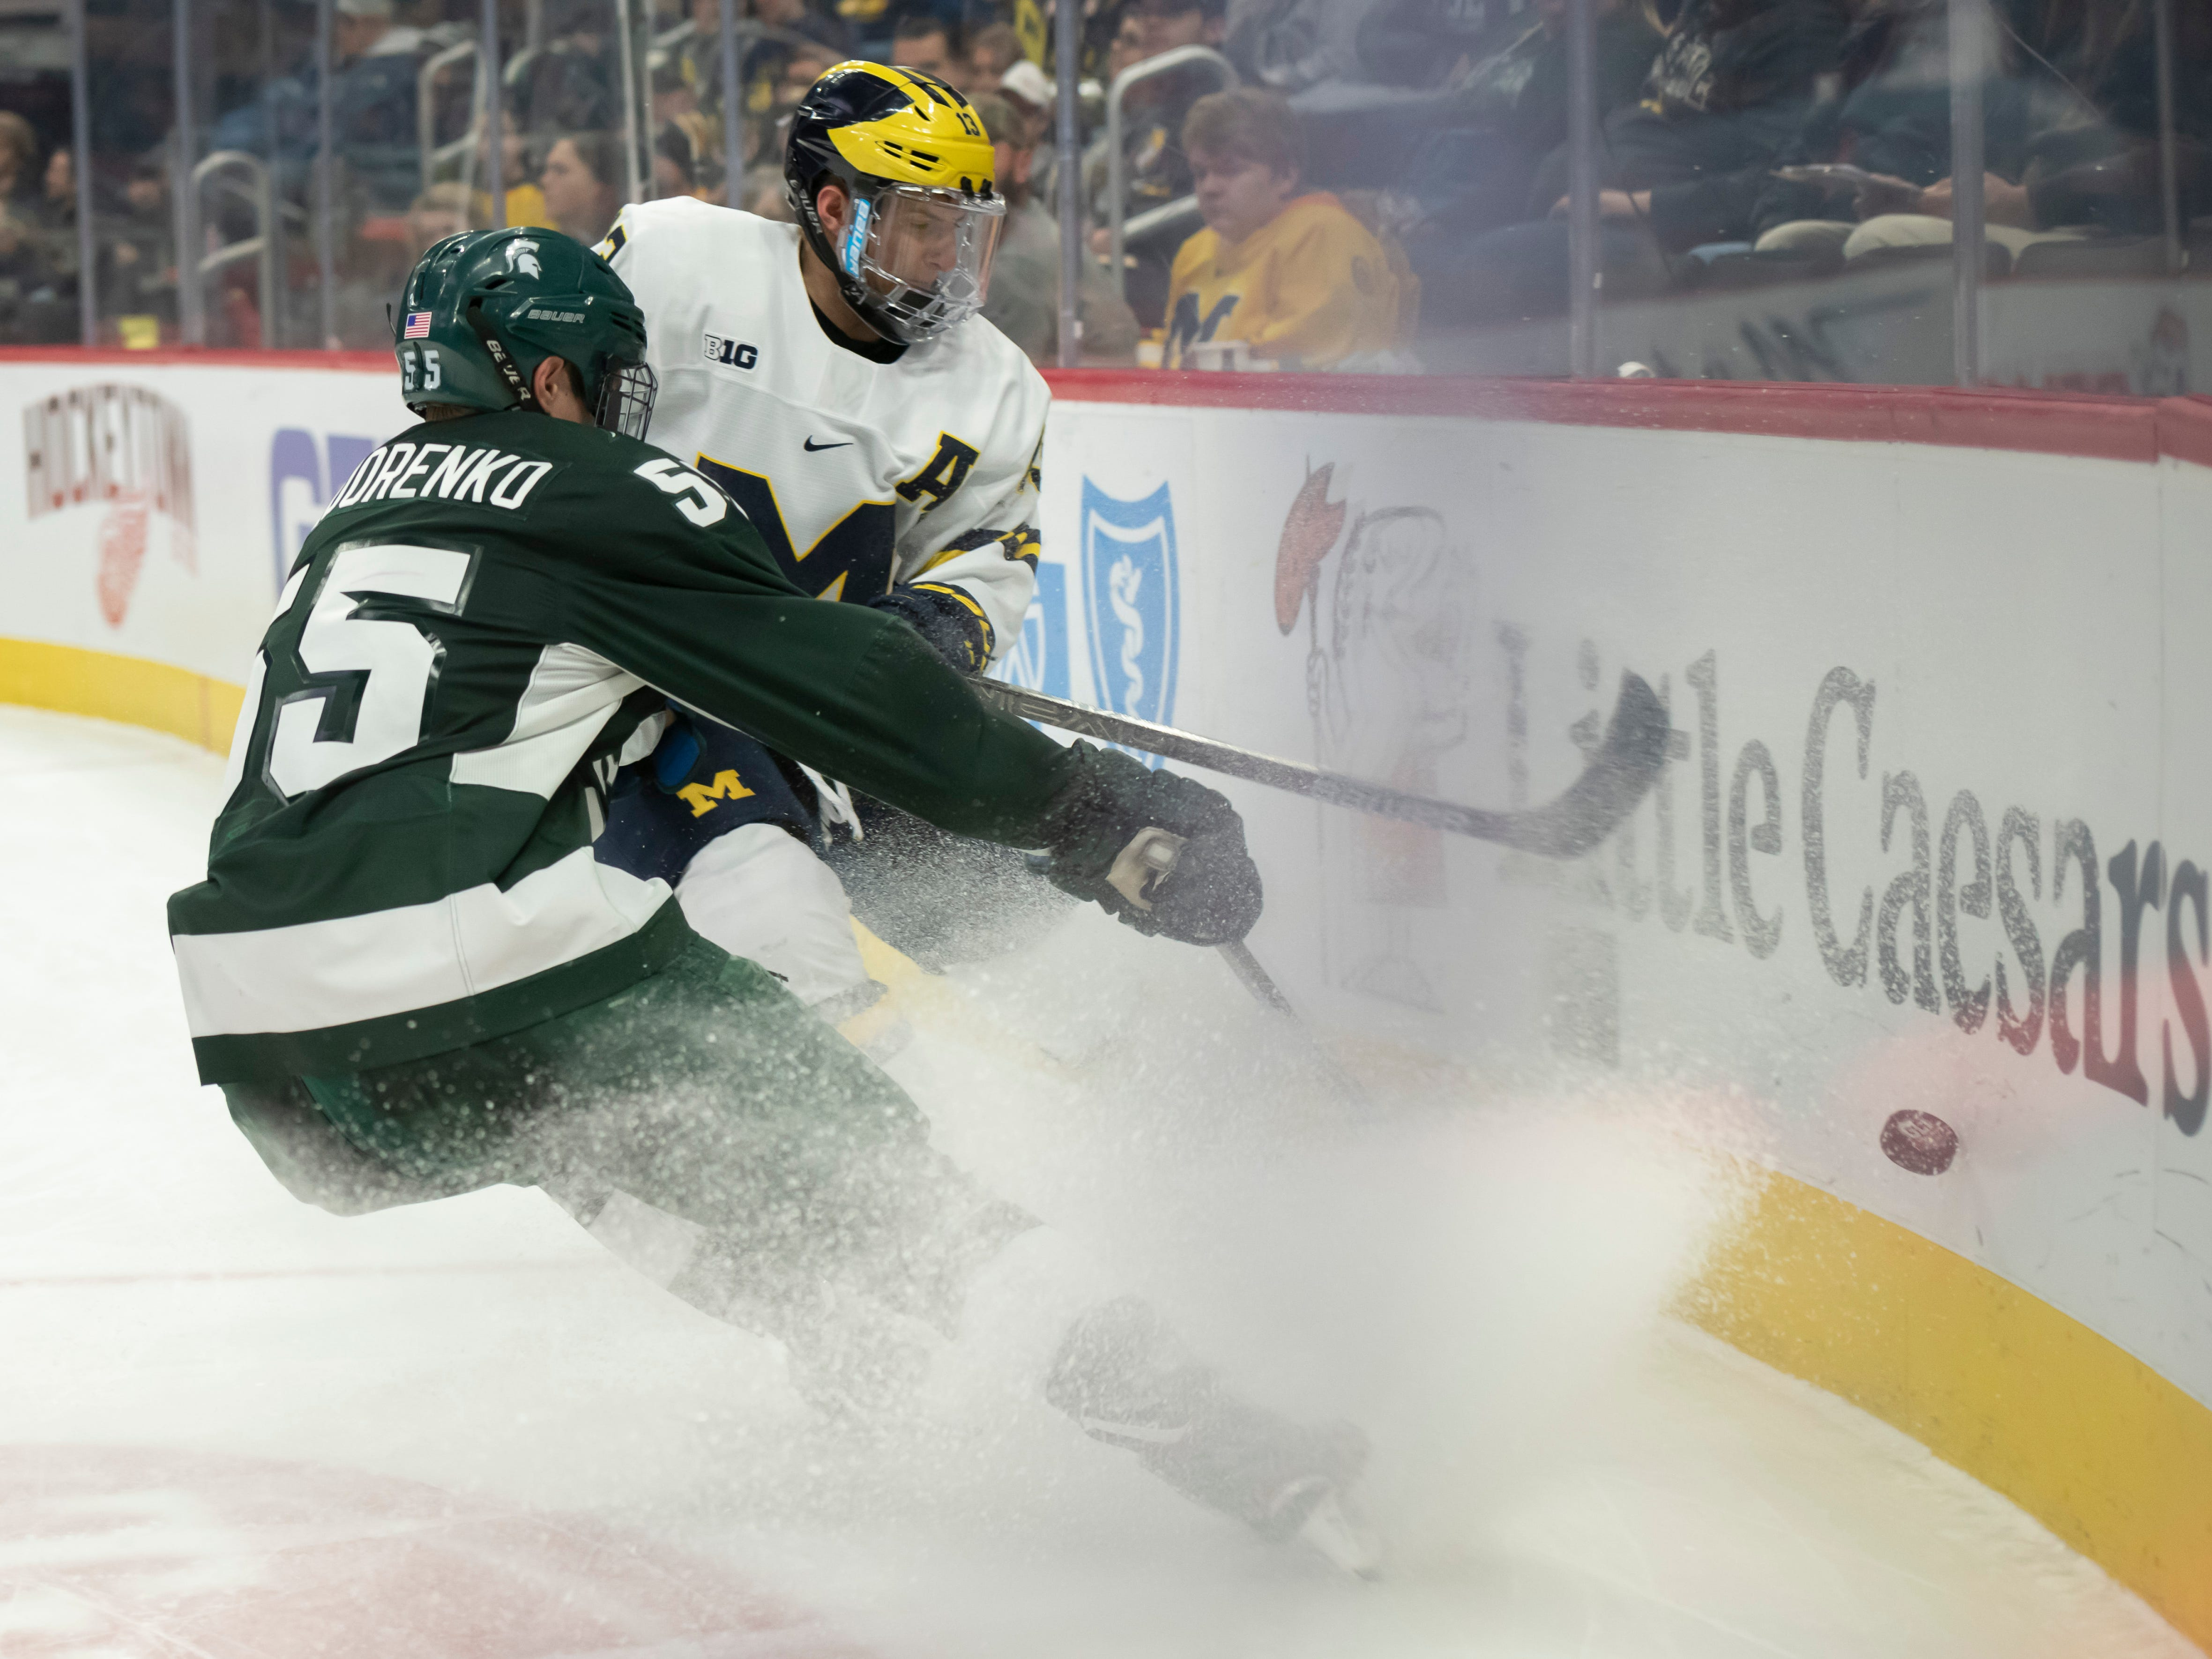 Michigan forward Jake Slaker and Michigan State forward Patrick Khodorenko battle for the puck in the first period.